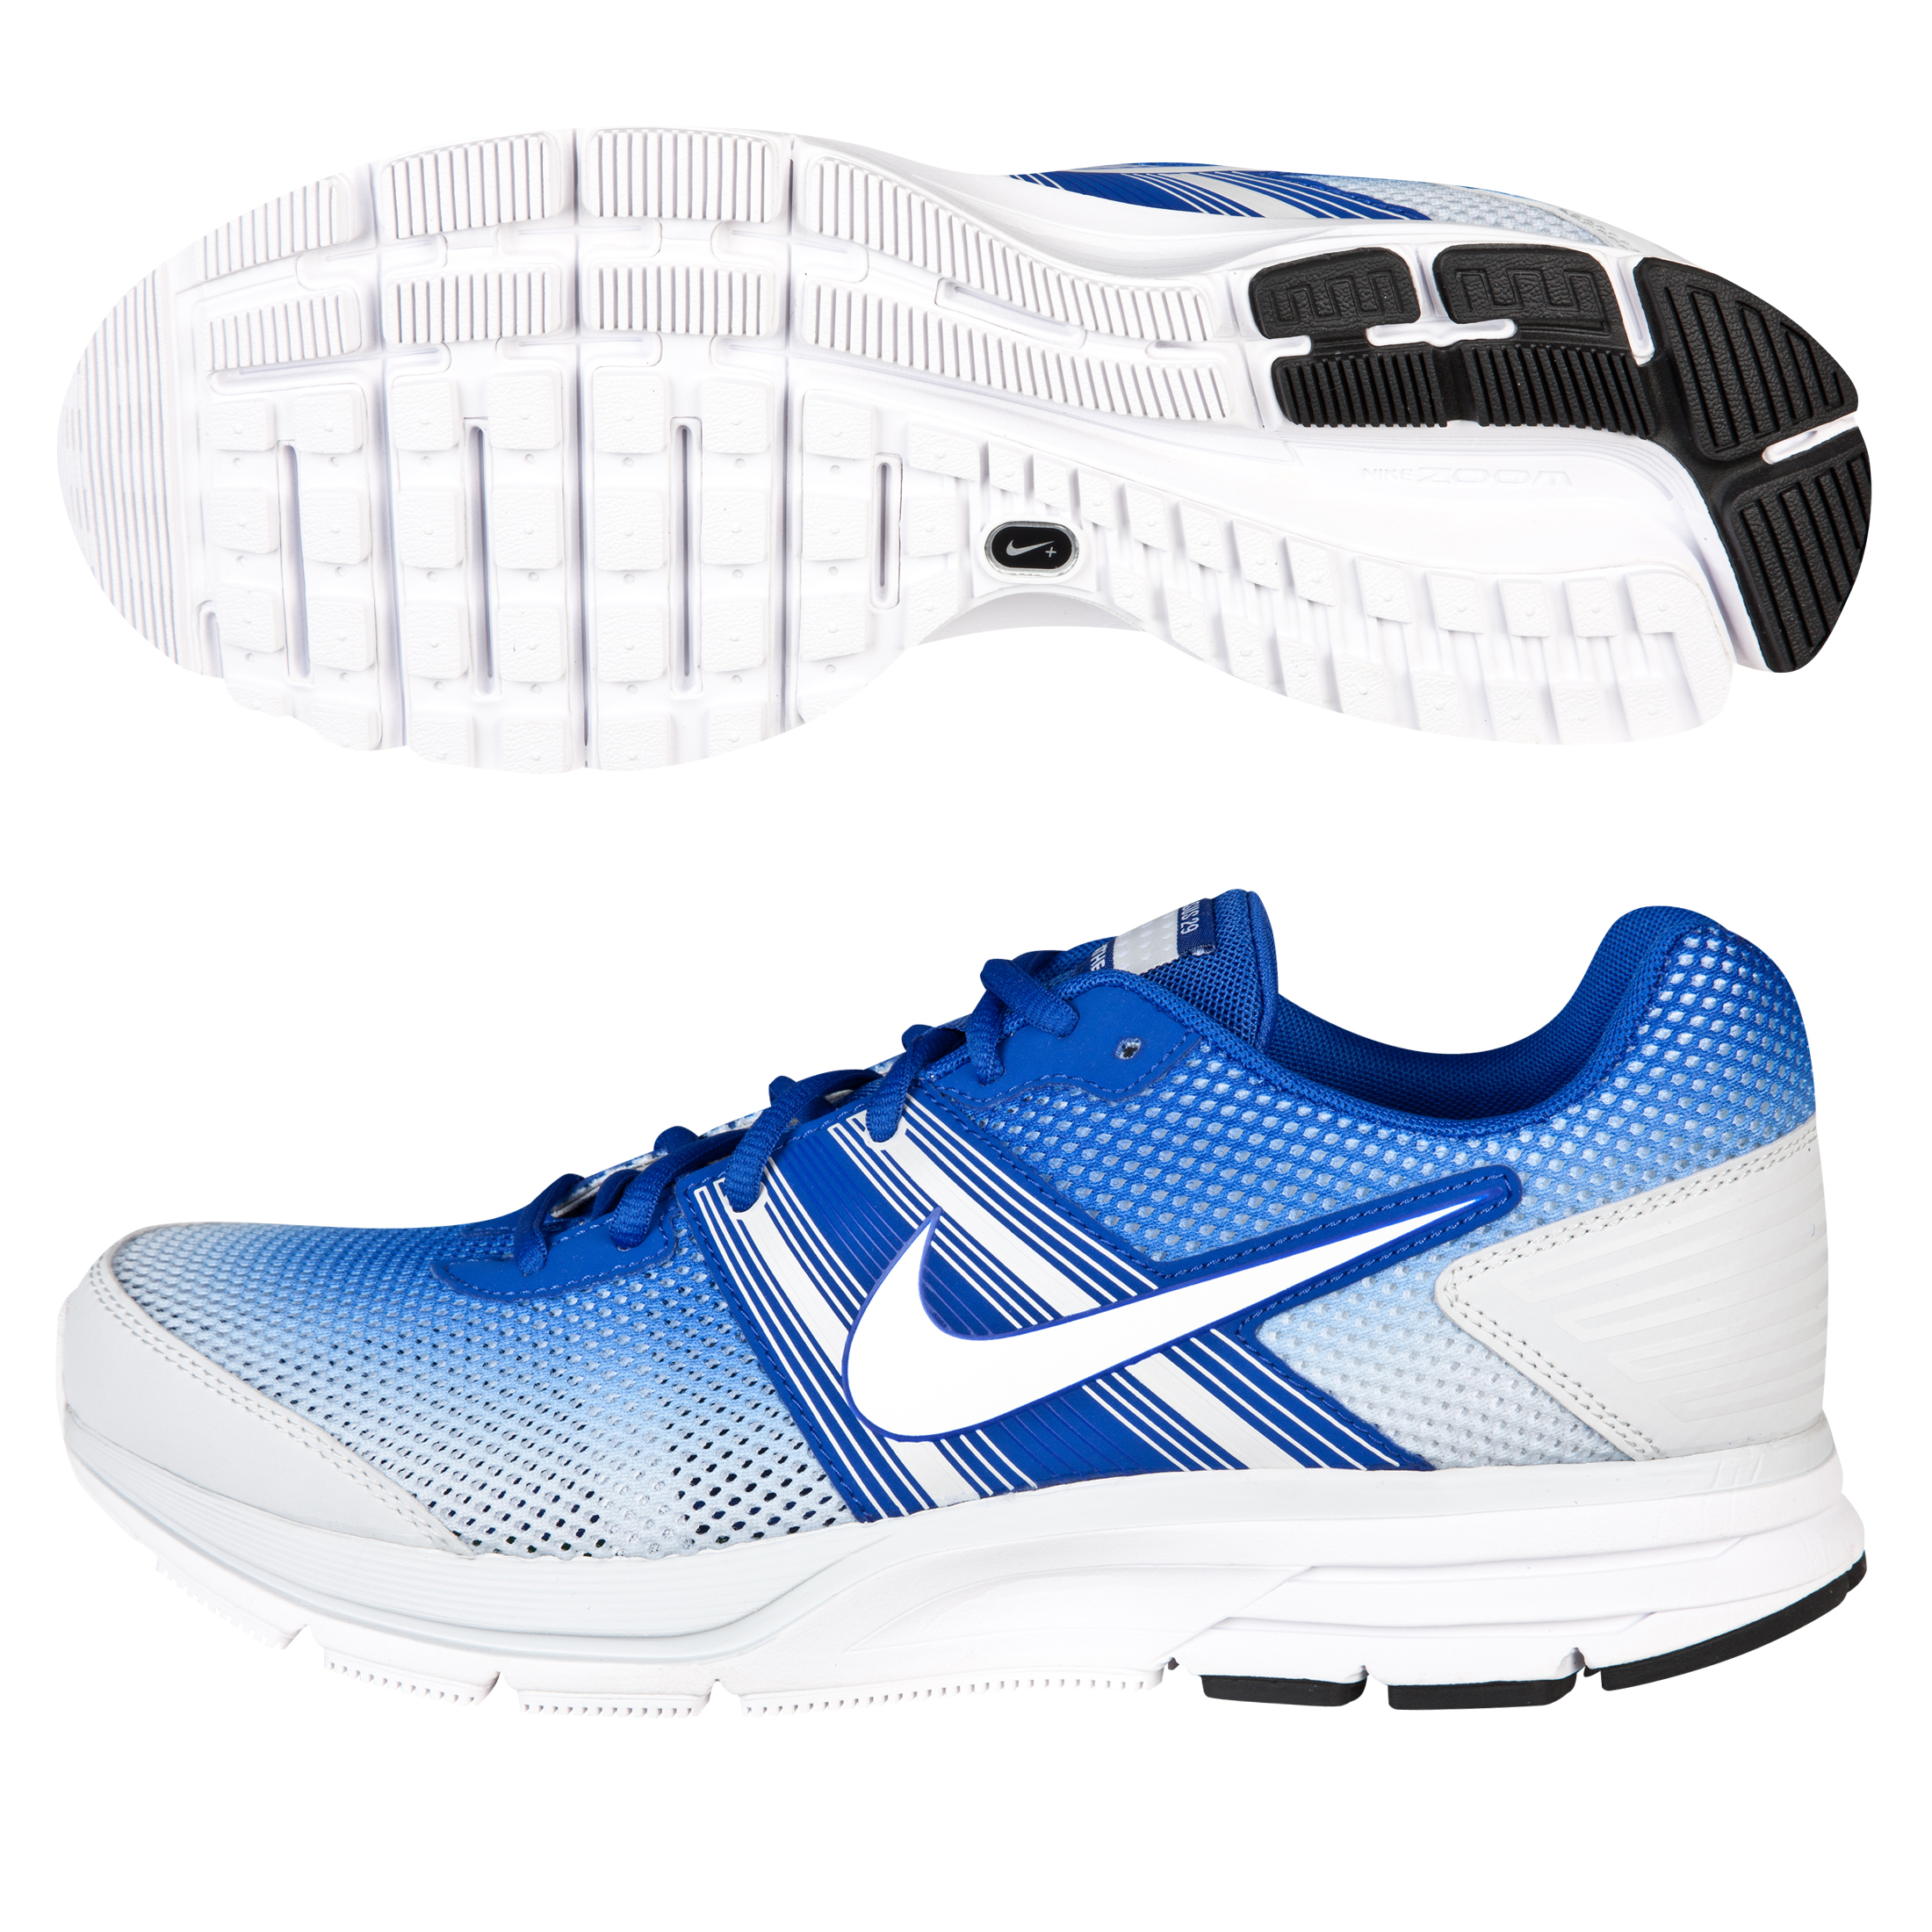 Nike Air Pegasus+ 29 (Breathe) Trainer - Hyper Blue/ White Pure Platinum